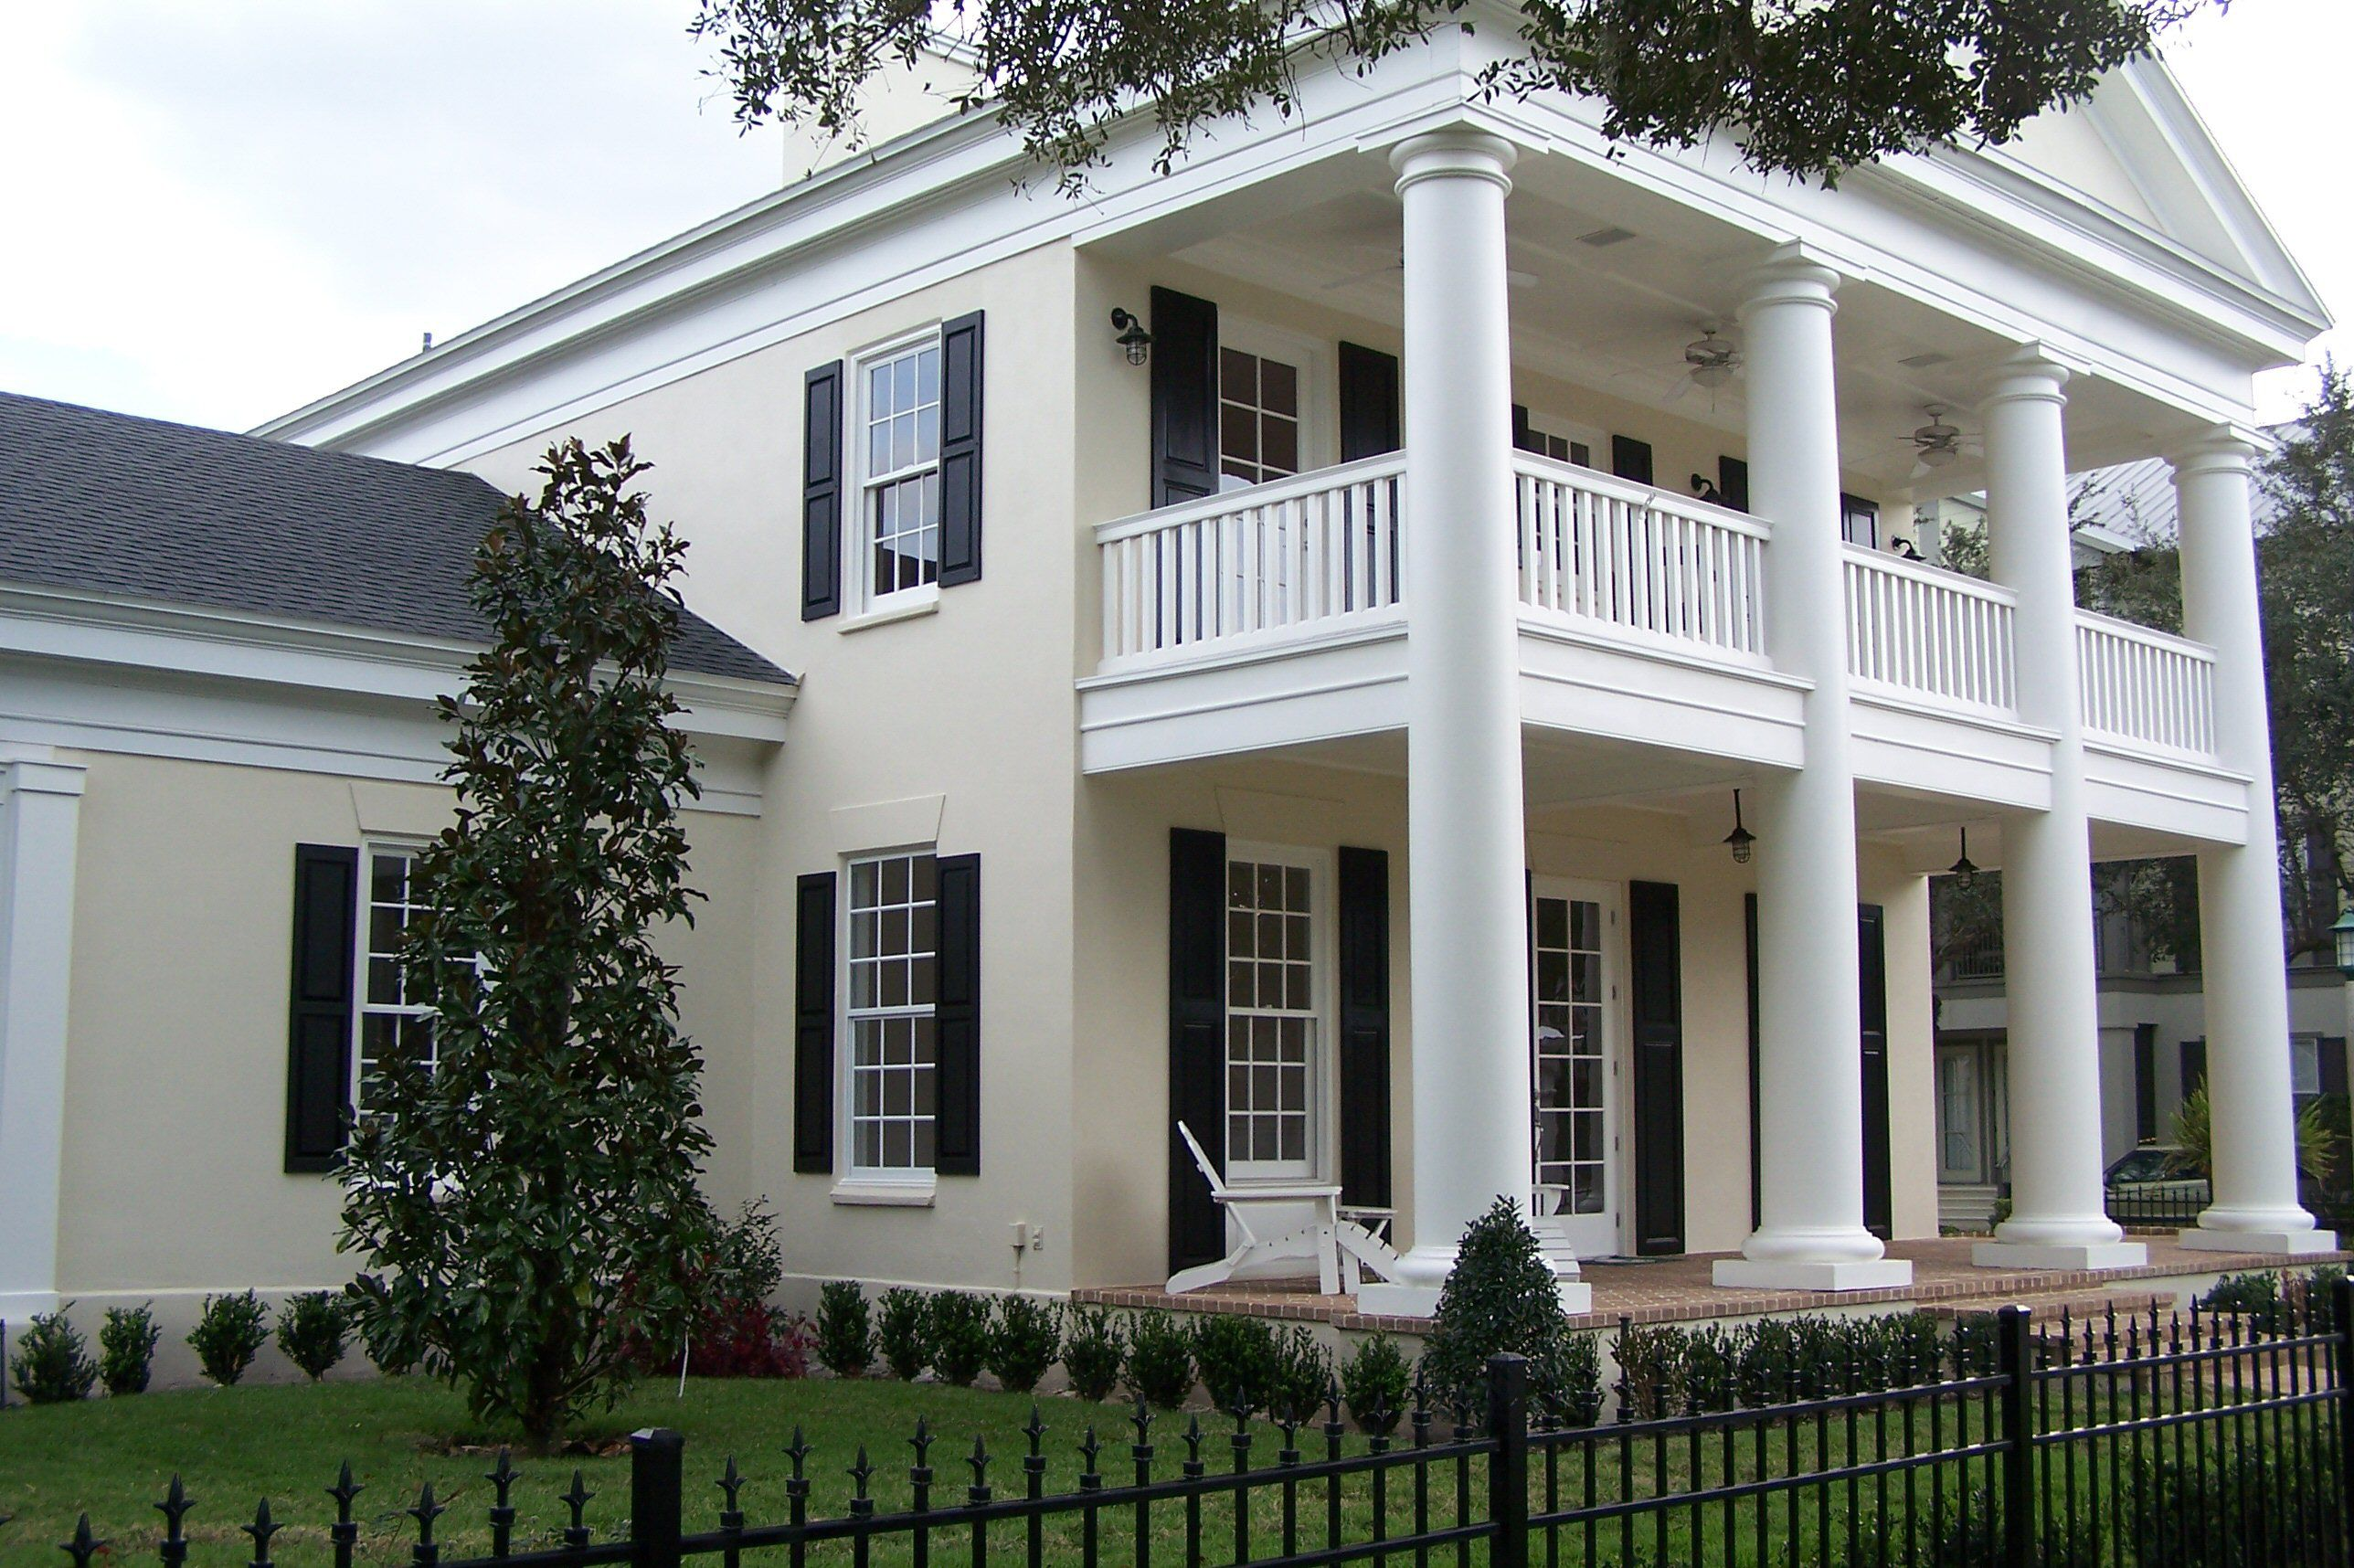 house with 4 massive columns, two-story front porches, and a large pediment